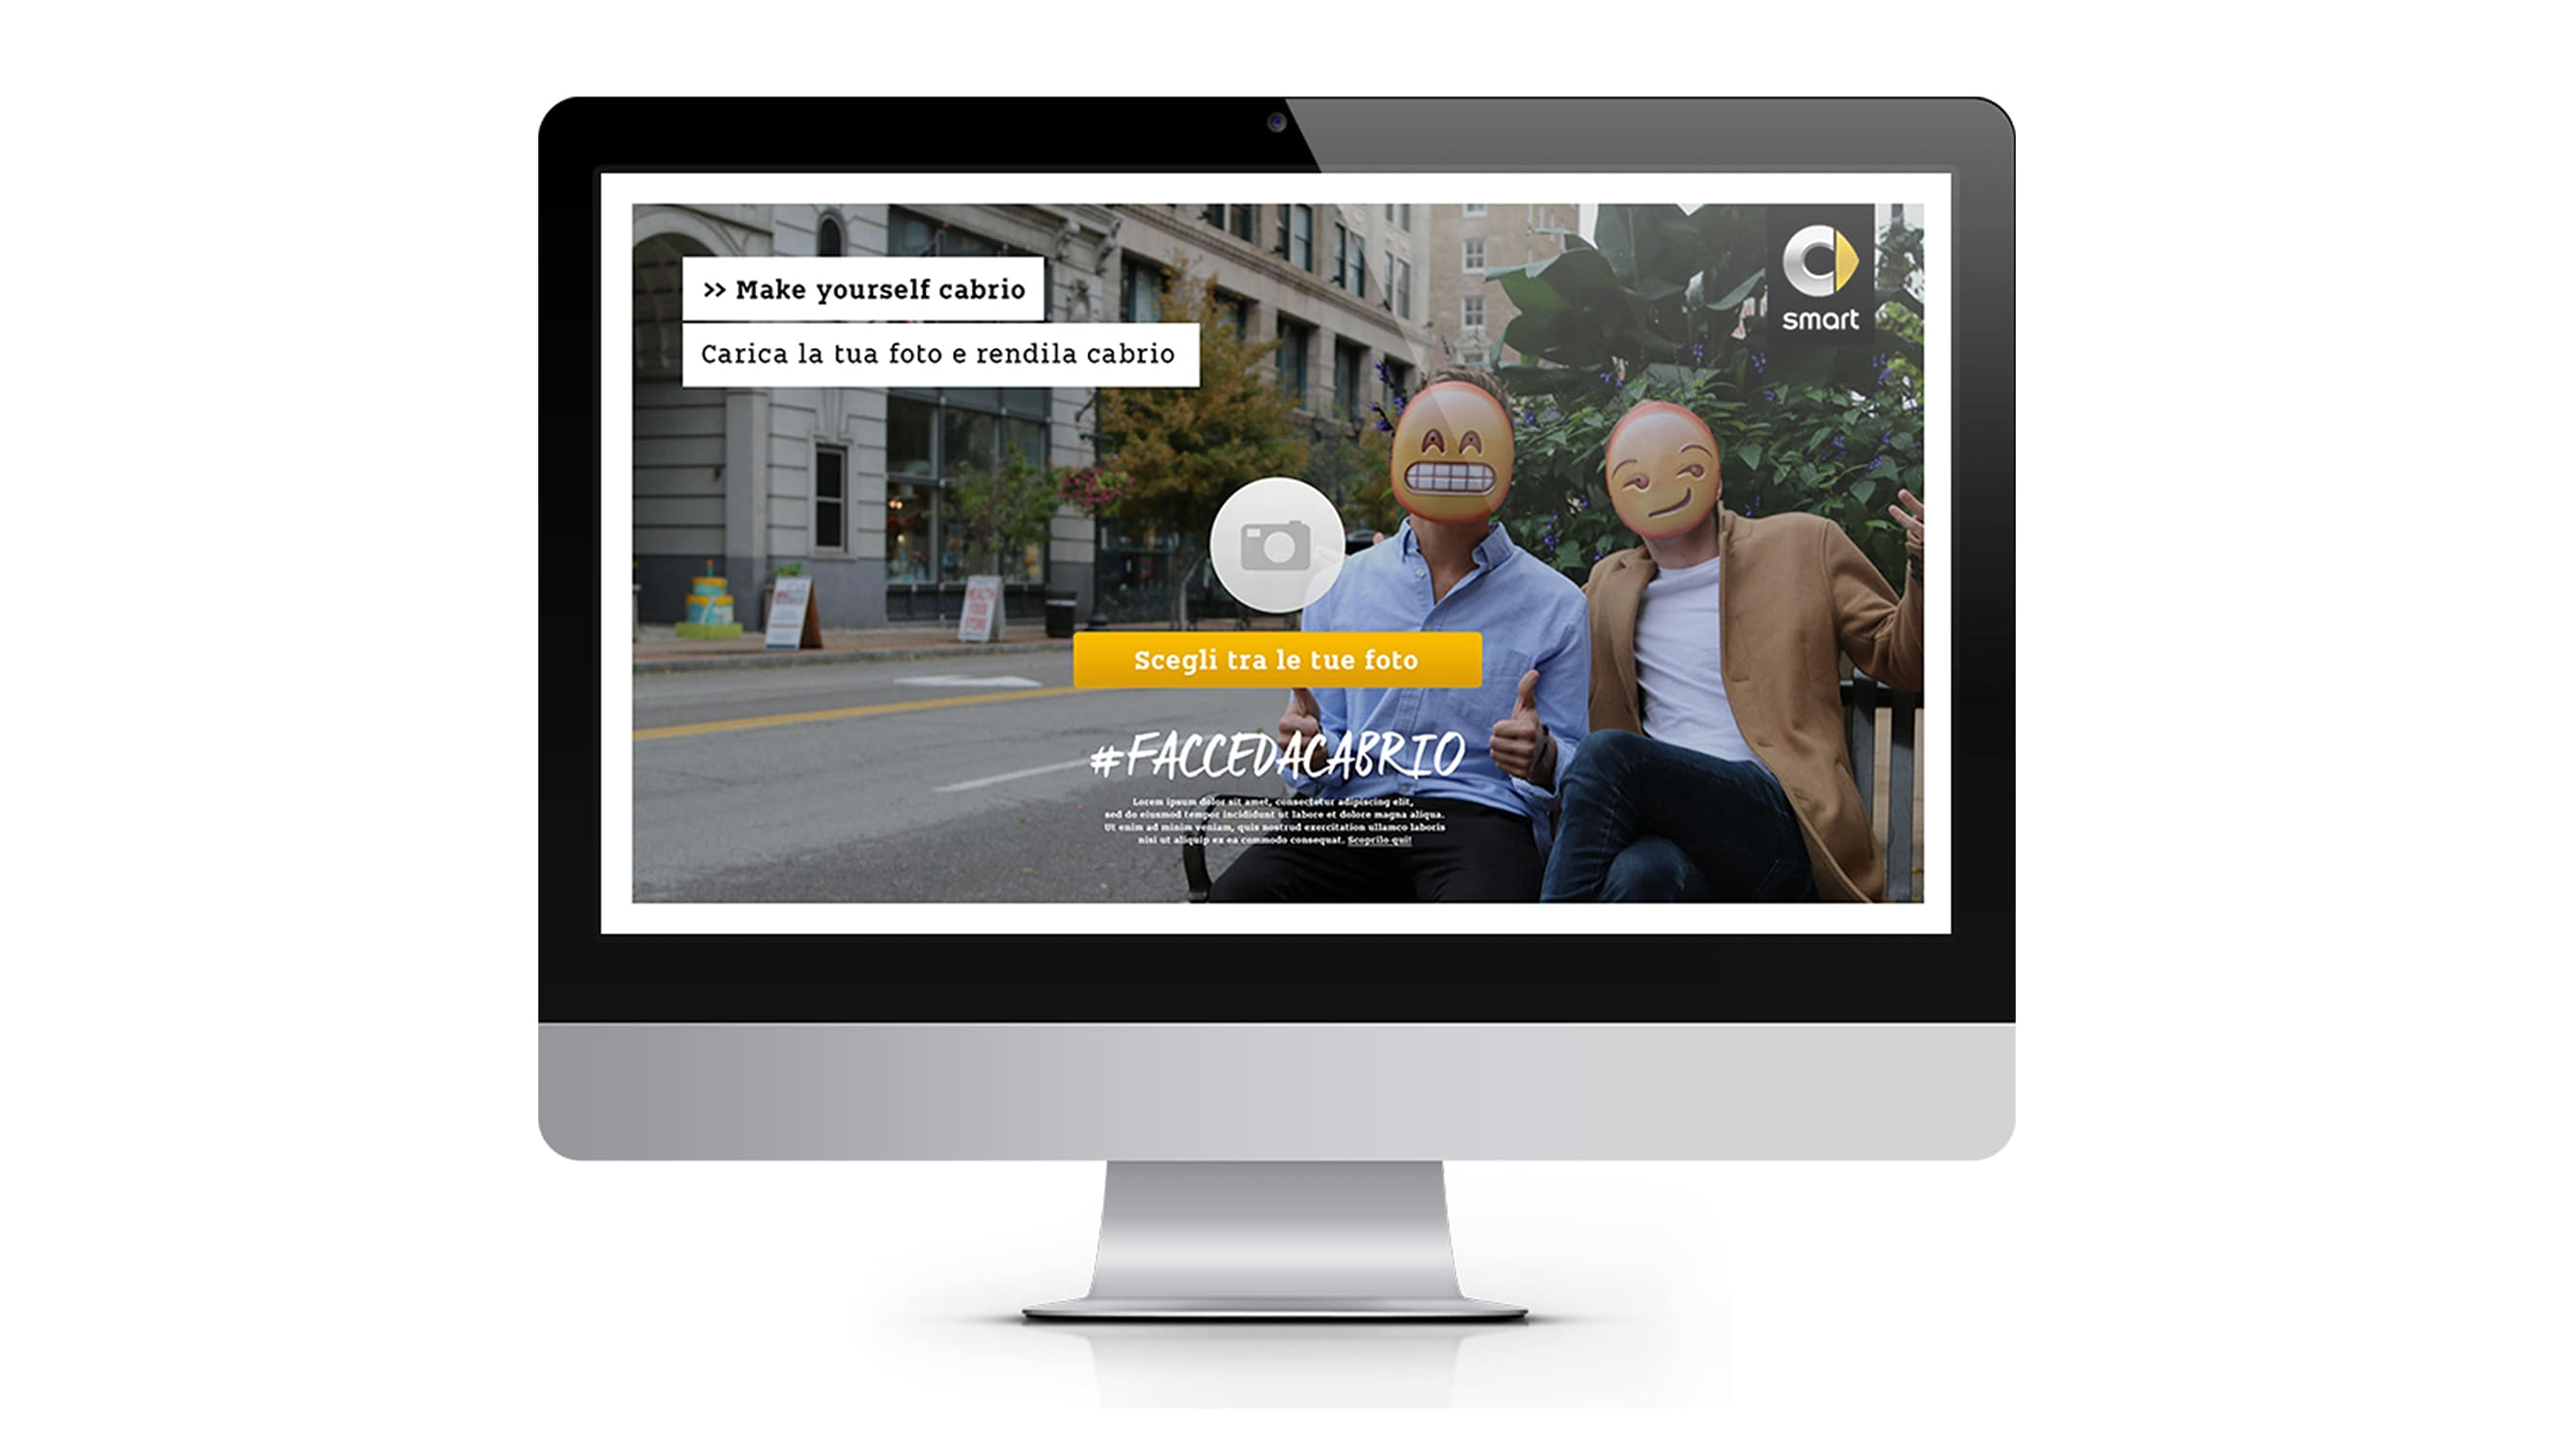 Automotive marketing & brand activation for Smart - Luther Dsgn agency